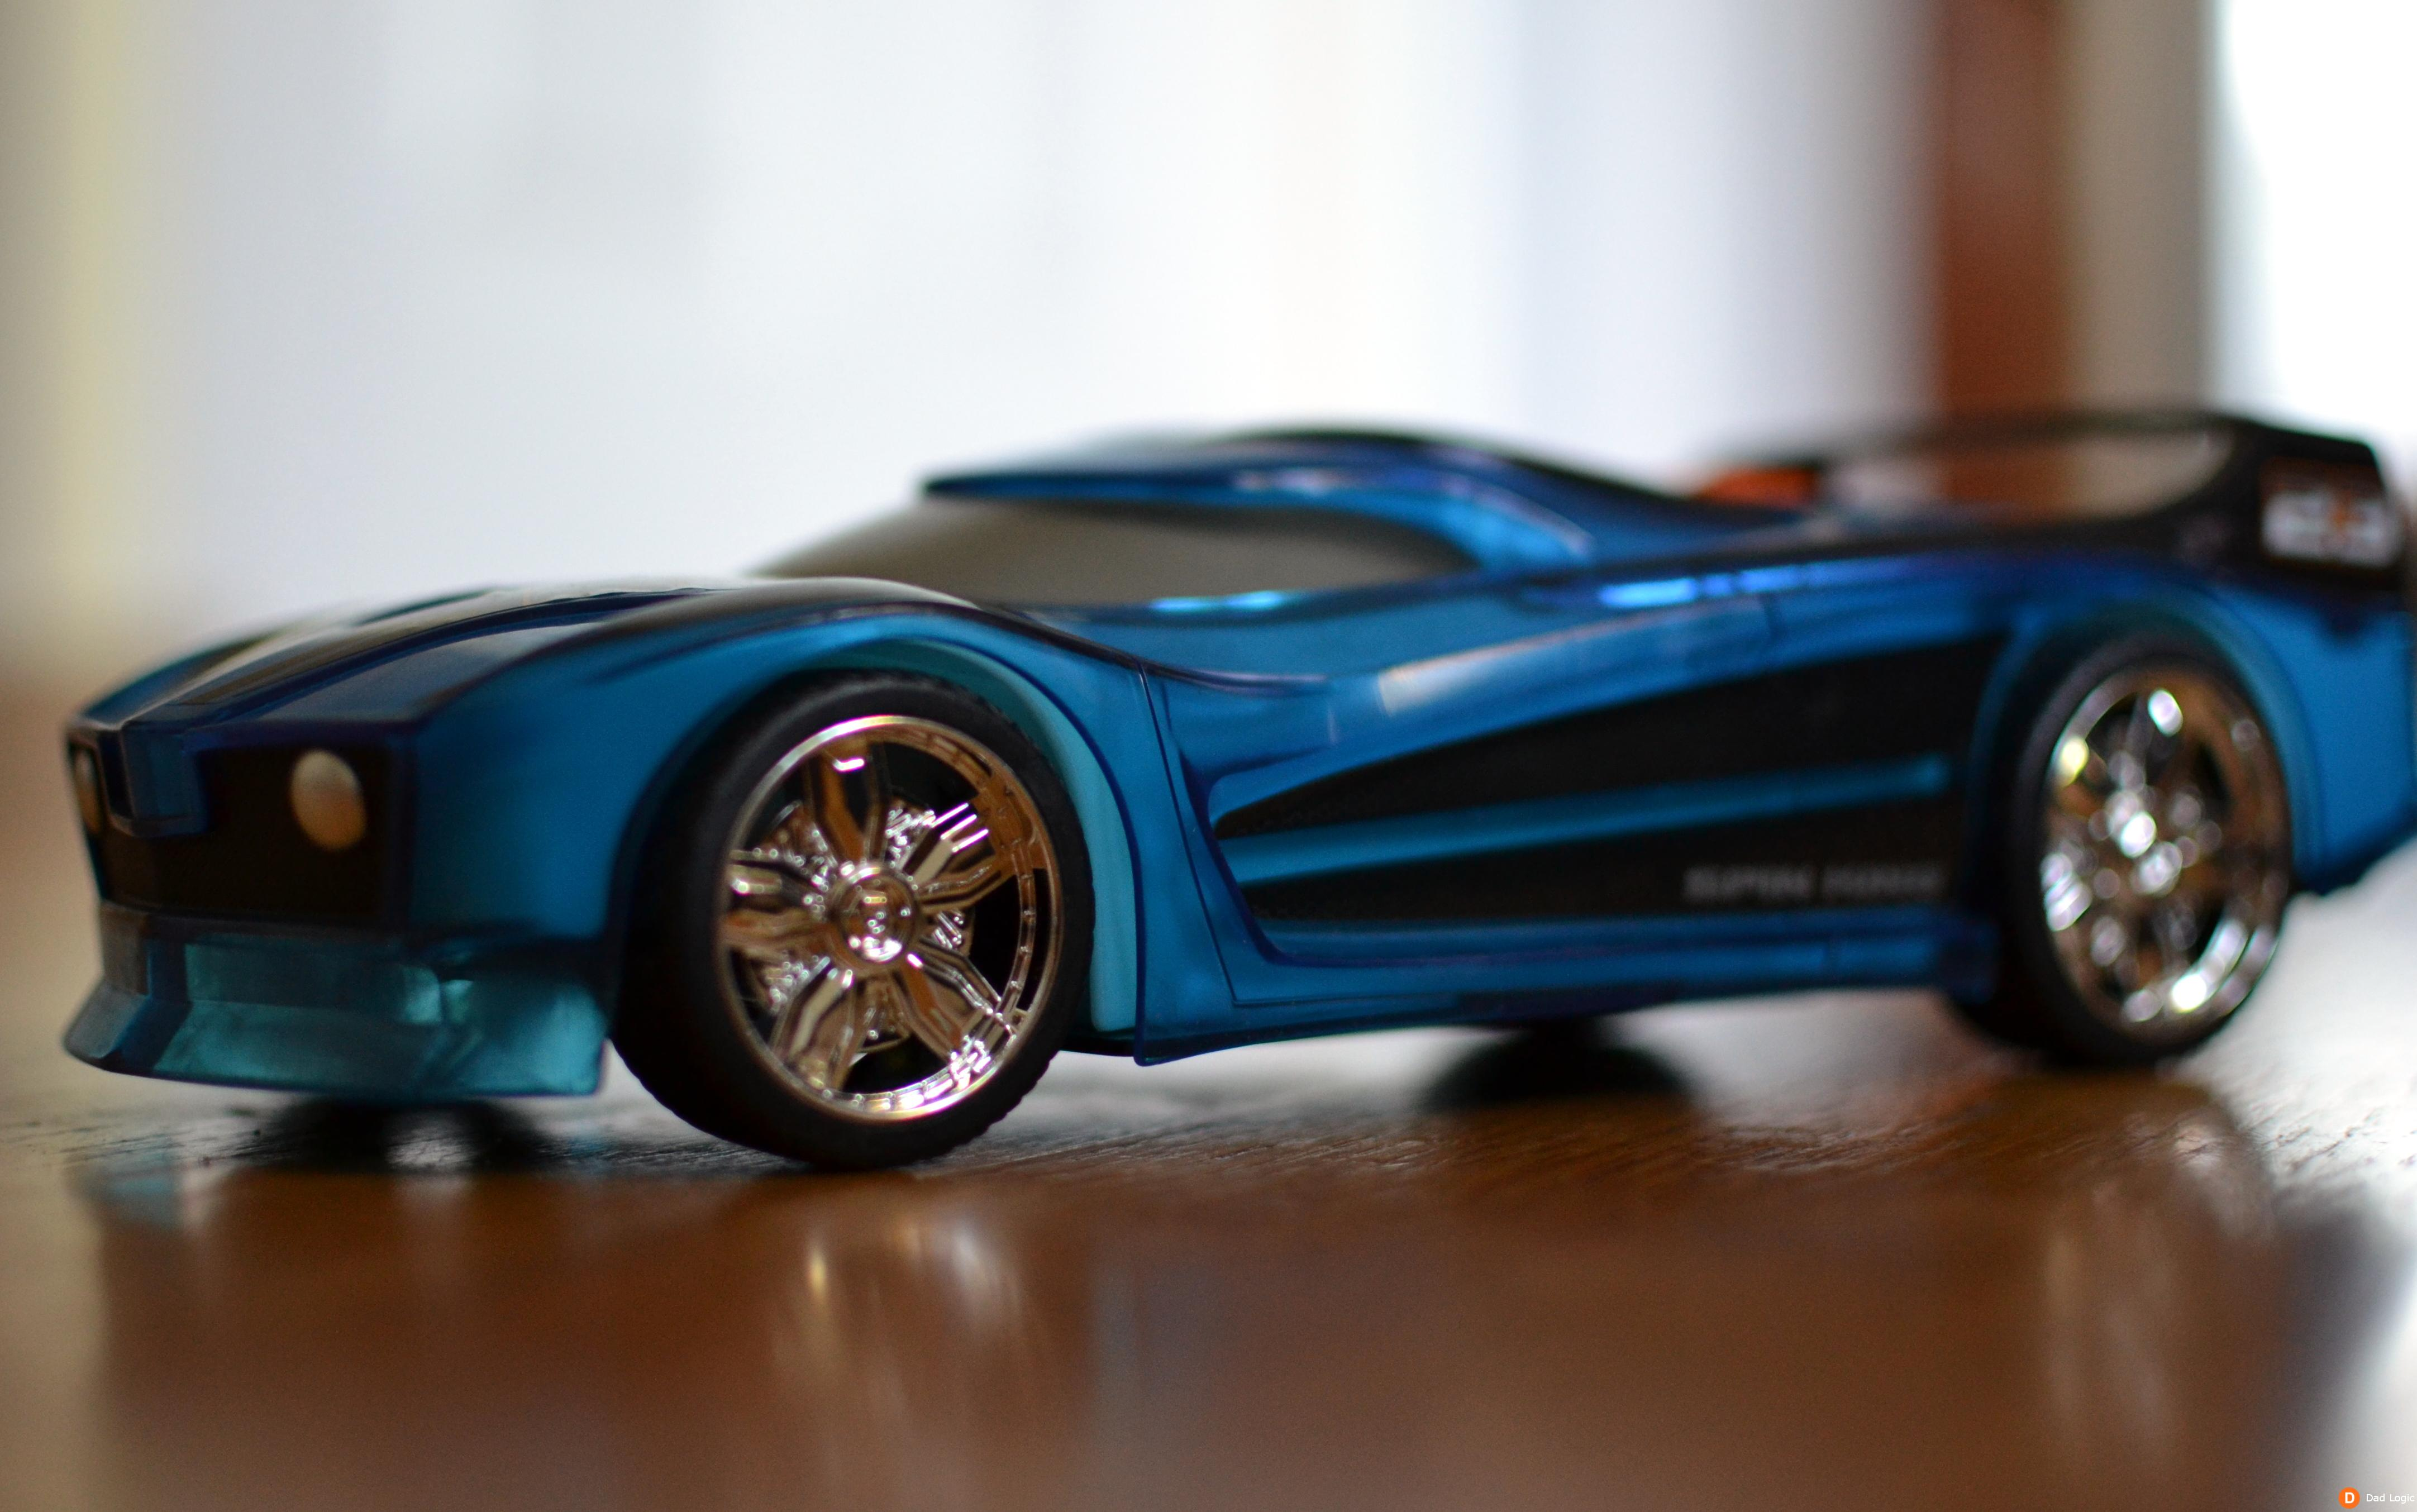 Hot Wheels Toy Cars : Toy state hot wheels hyper racer light and sound spin king